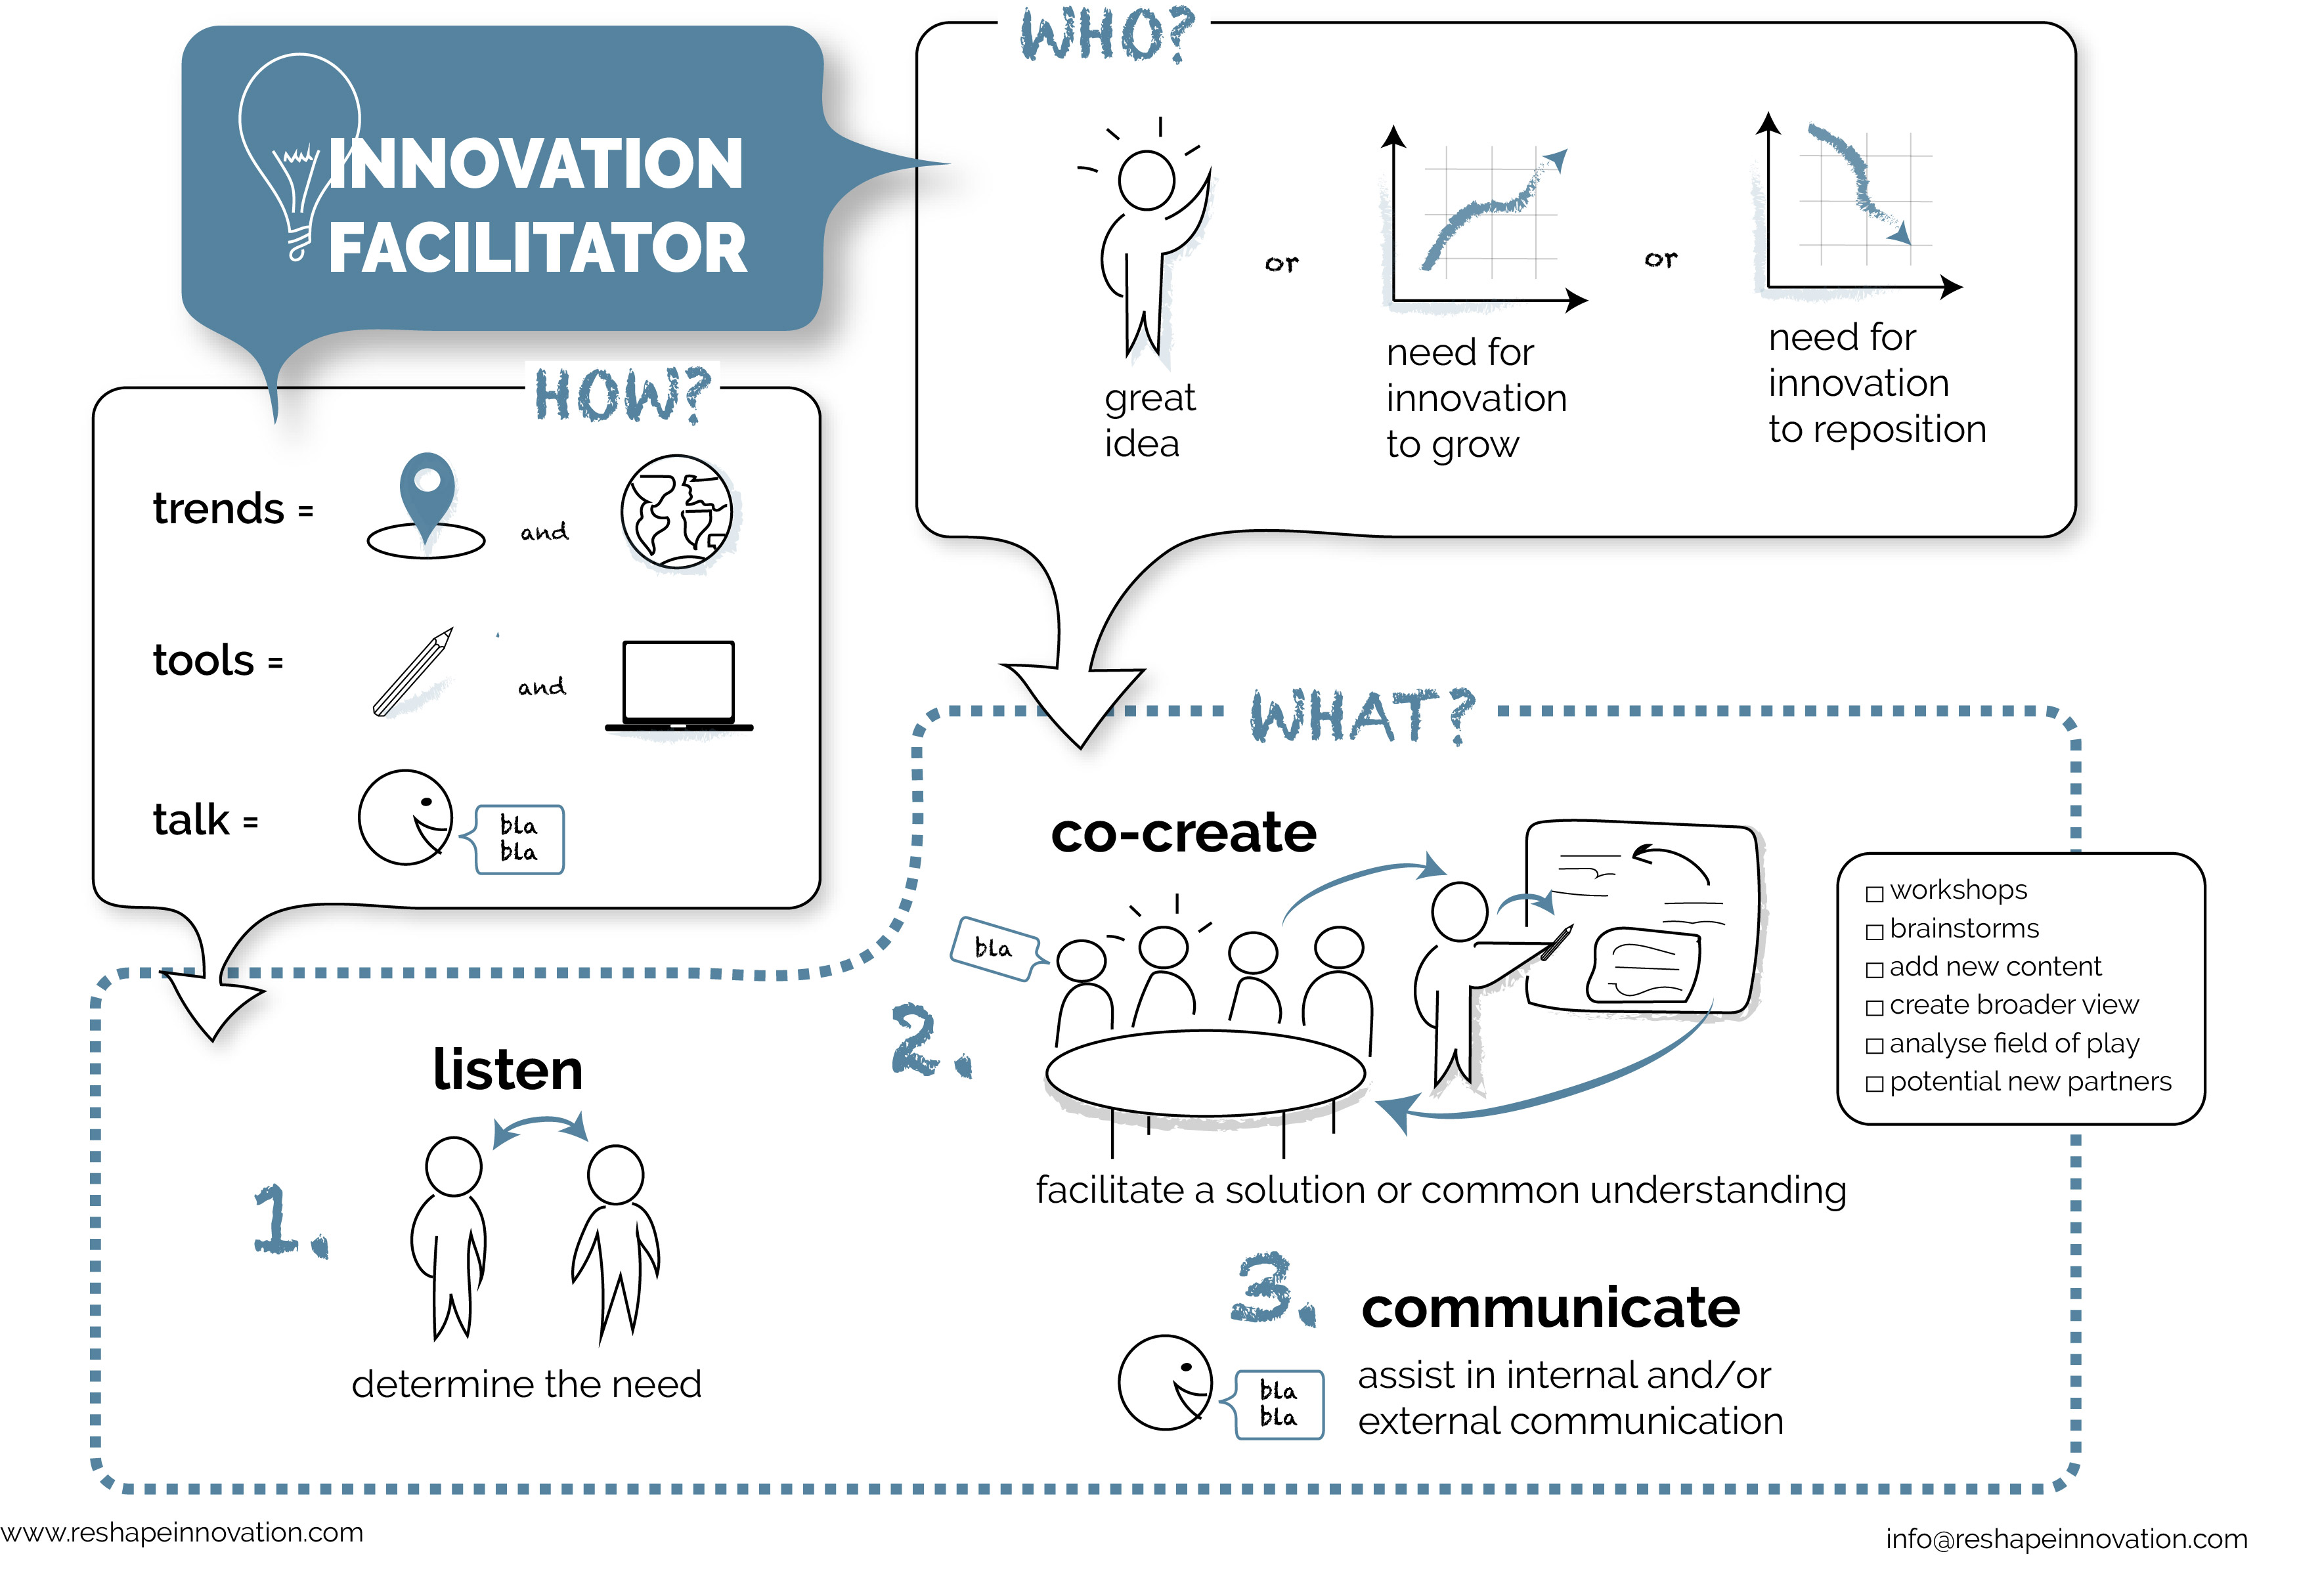 What is an innovation facilitator?